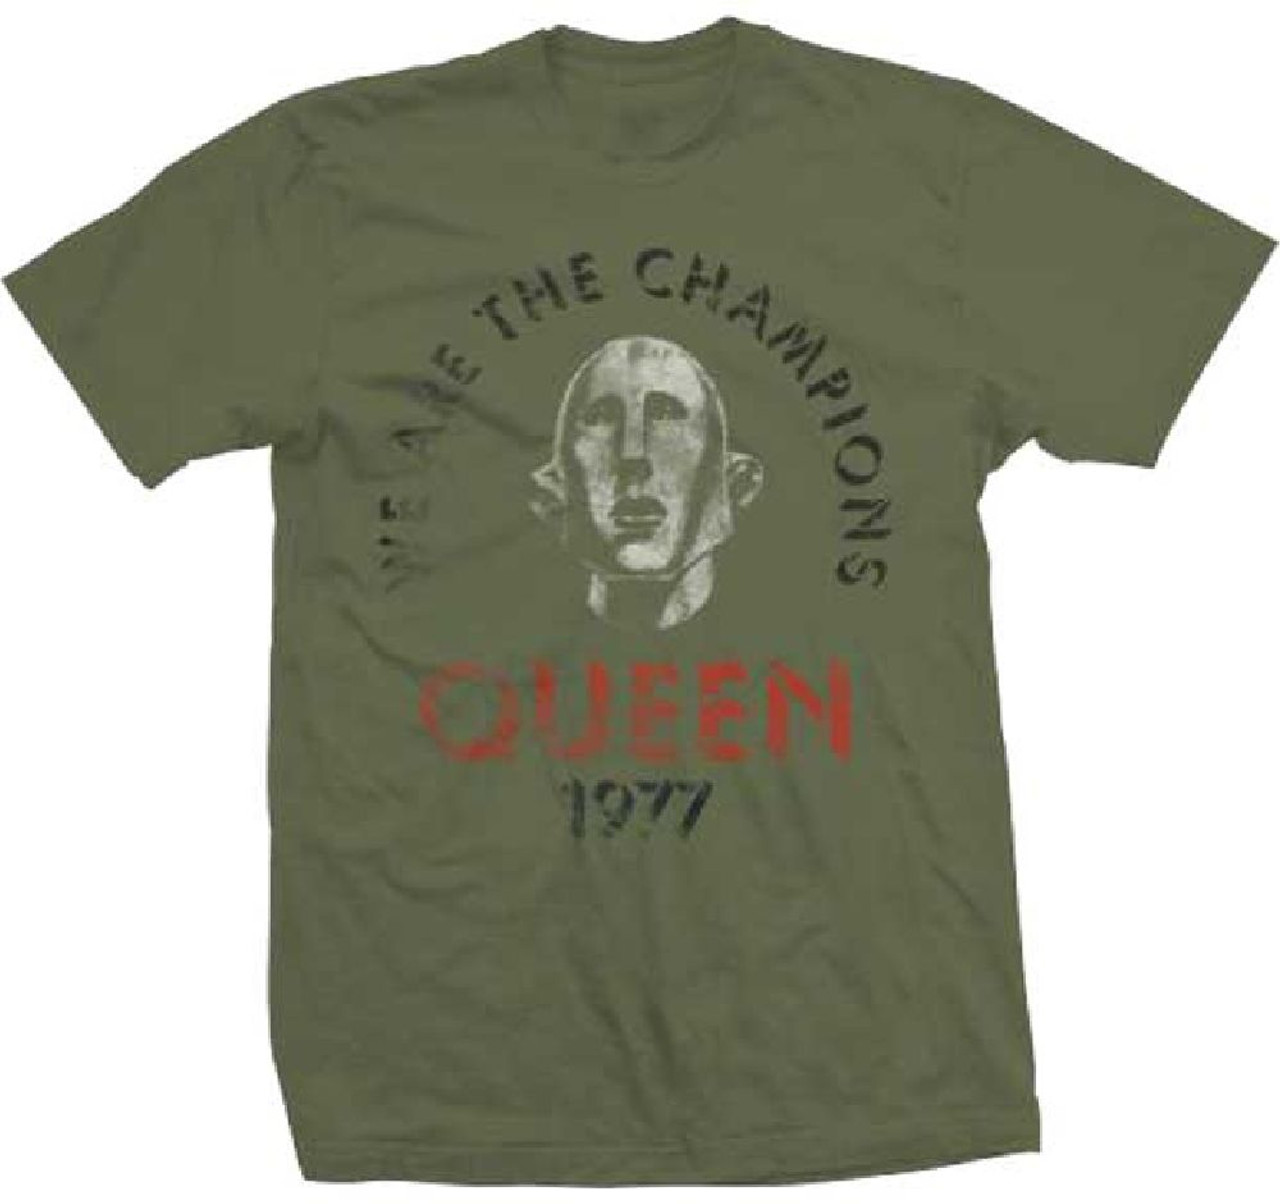 026da34e5 Queen Vintage T-Shirt - We Are the Champions 1977